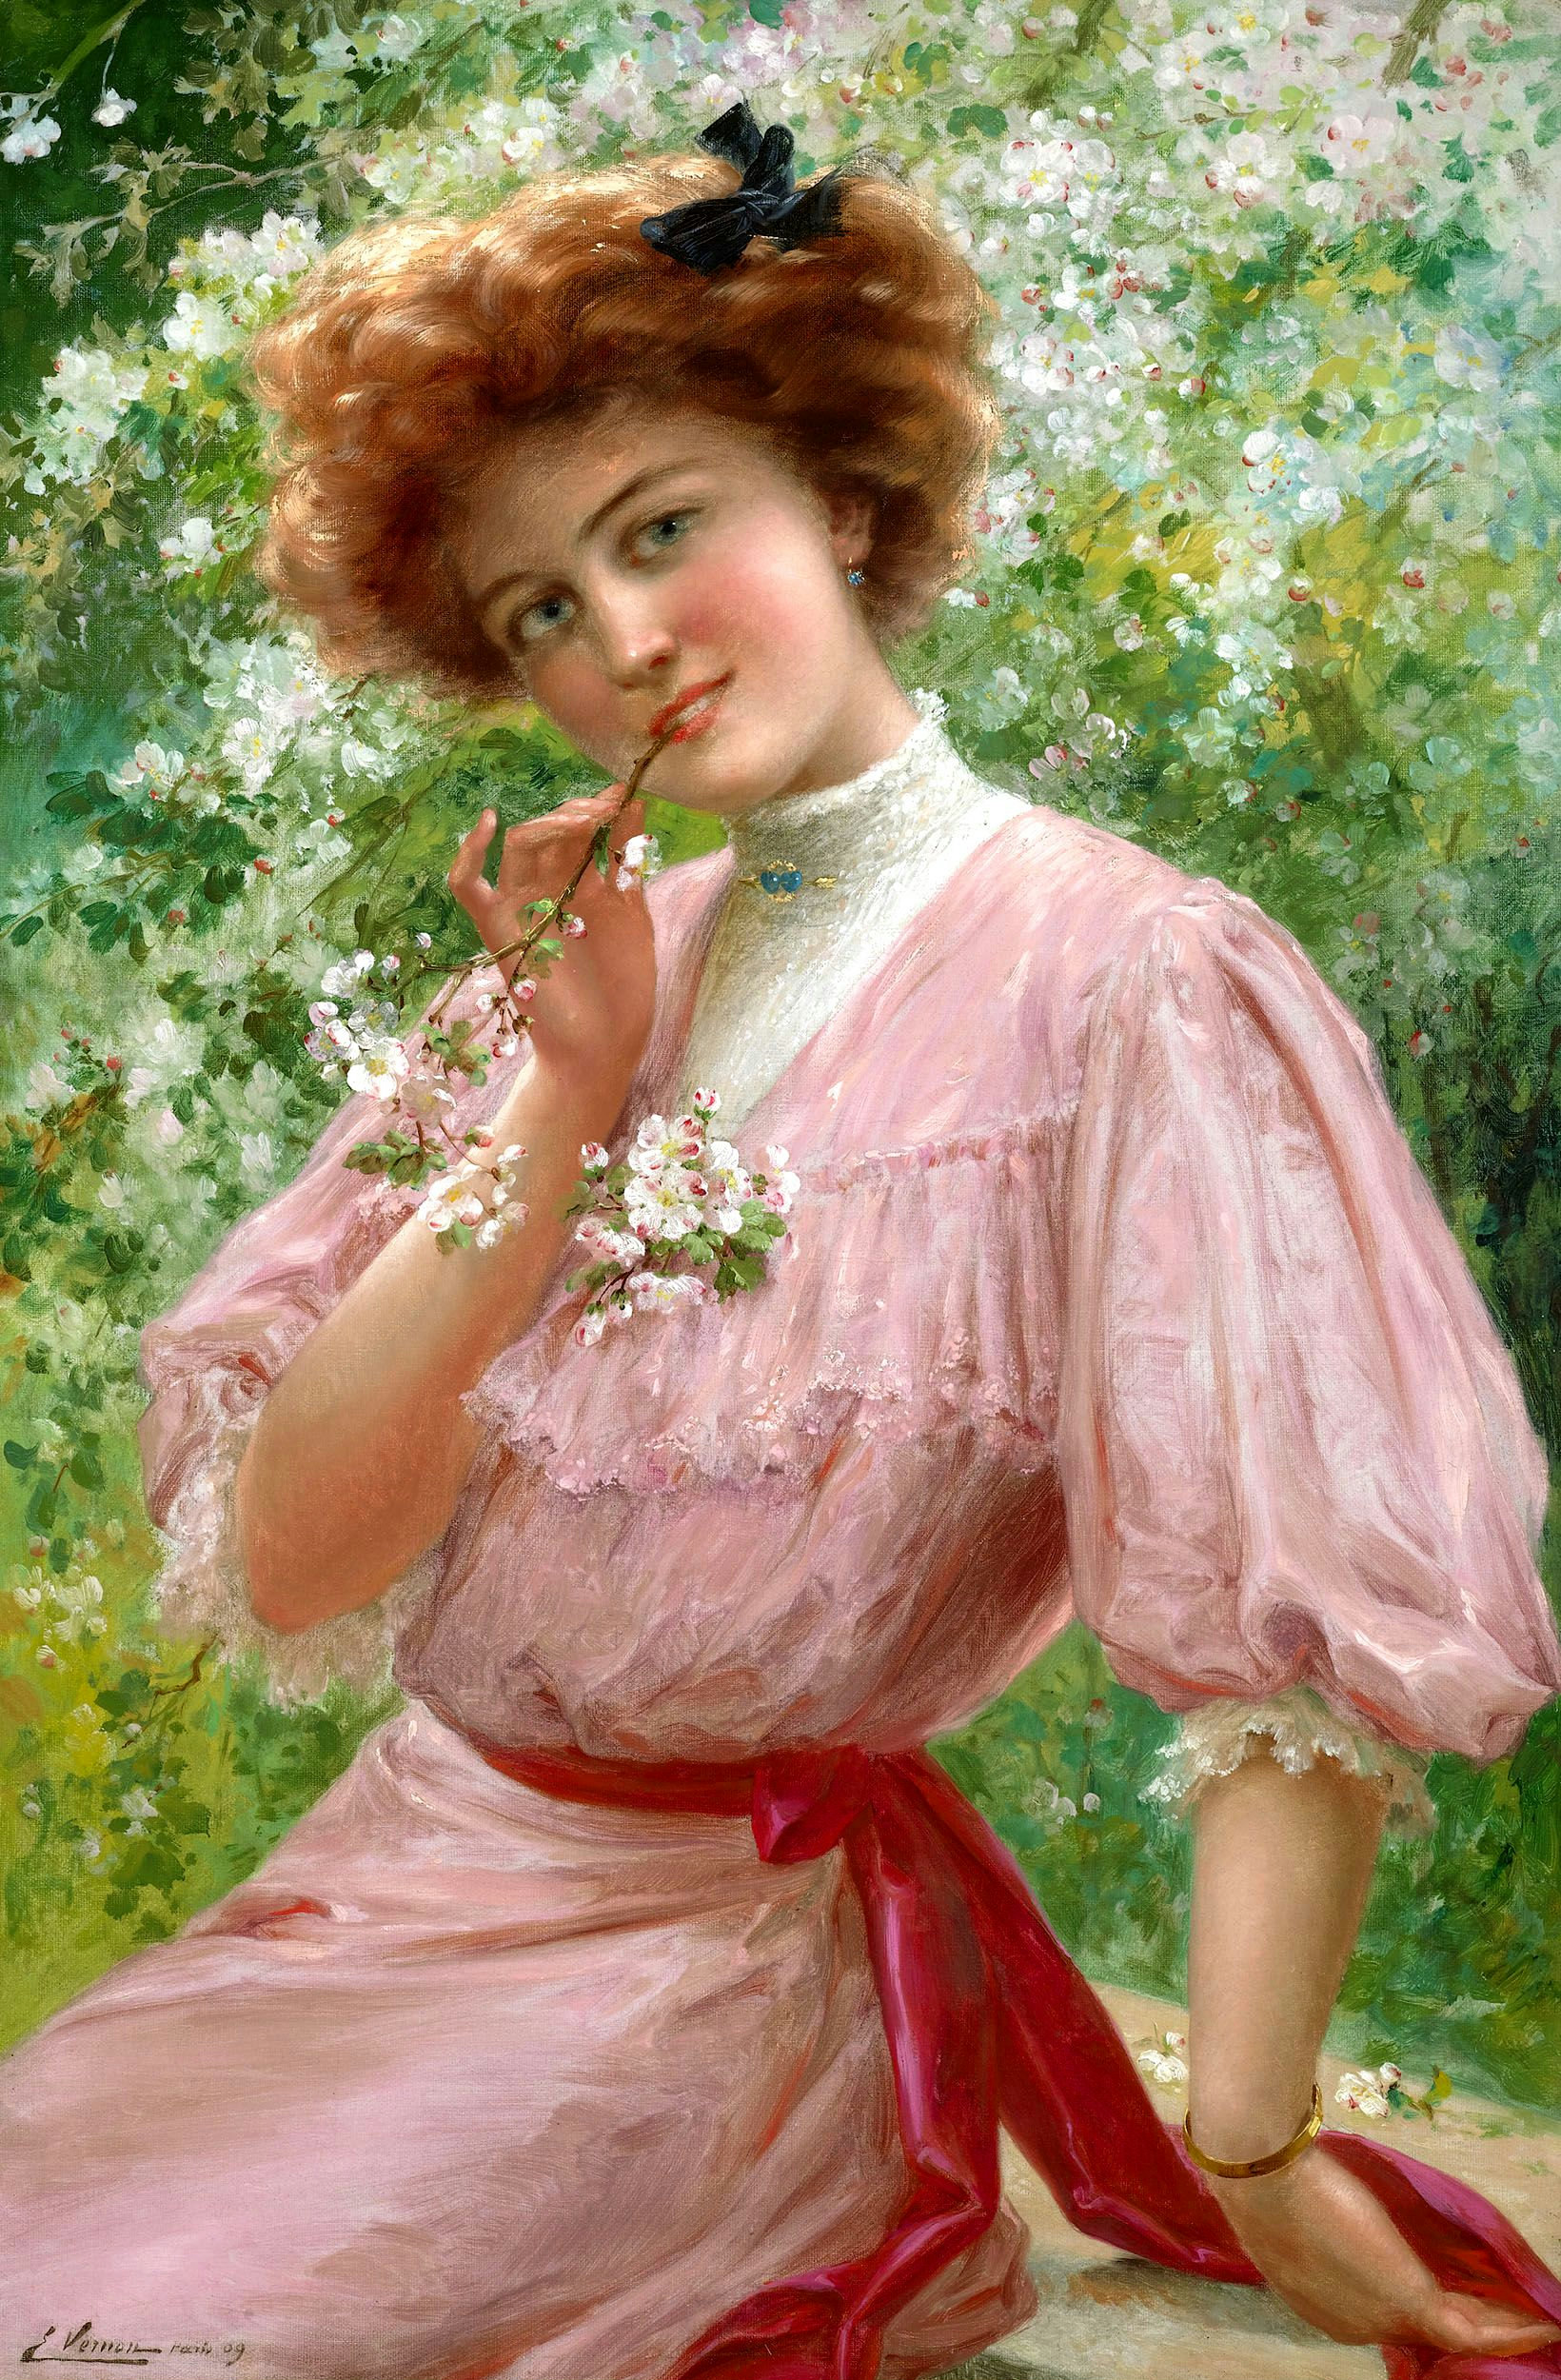 Pretty In Pink by Emile Vernon - 1909